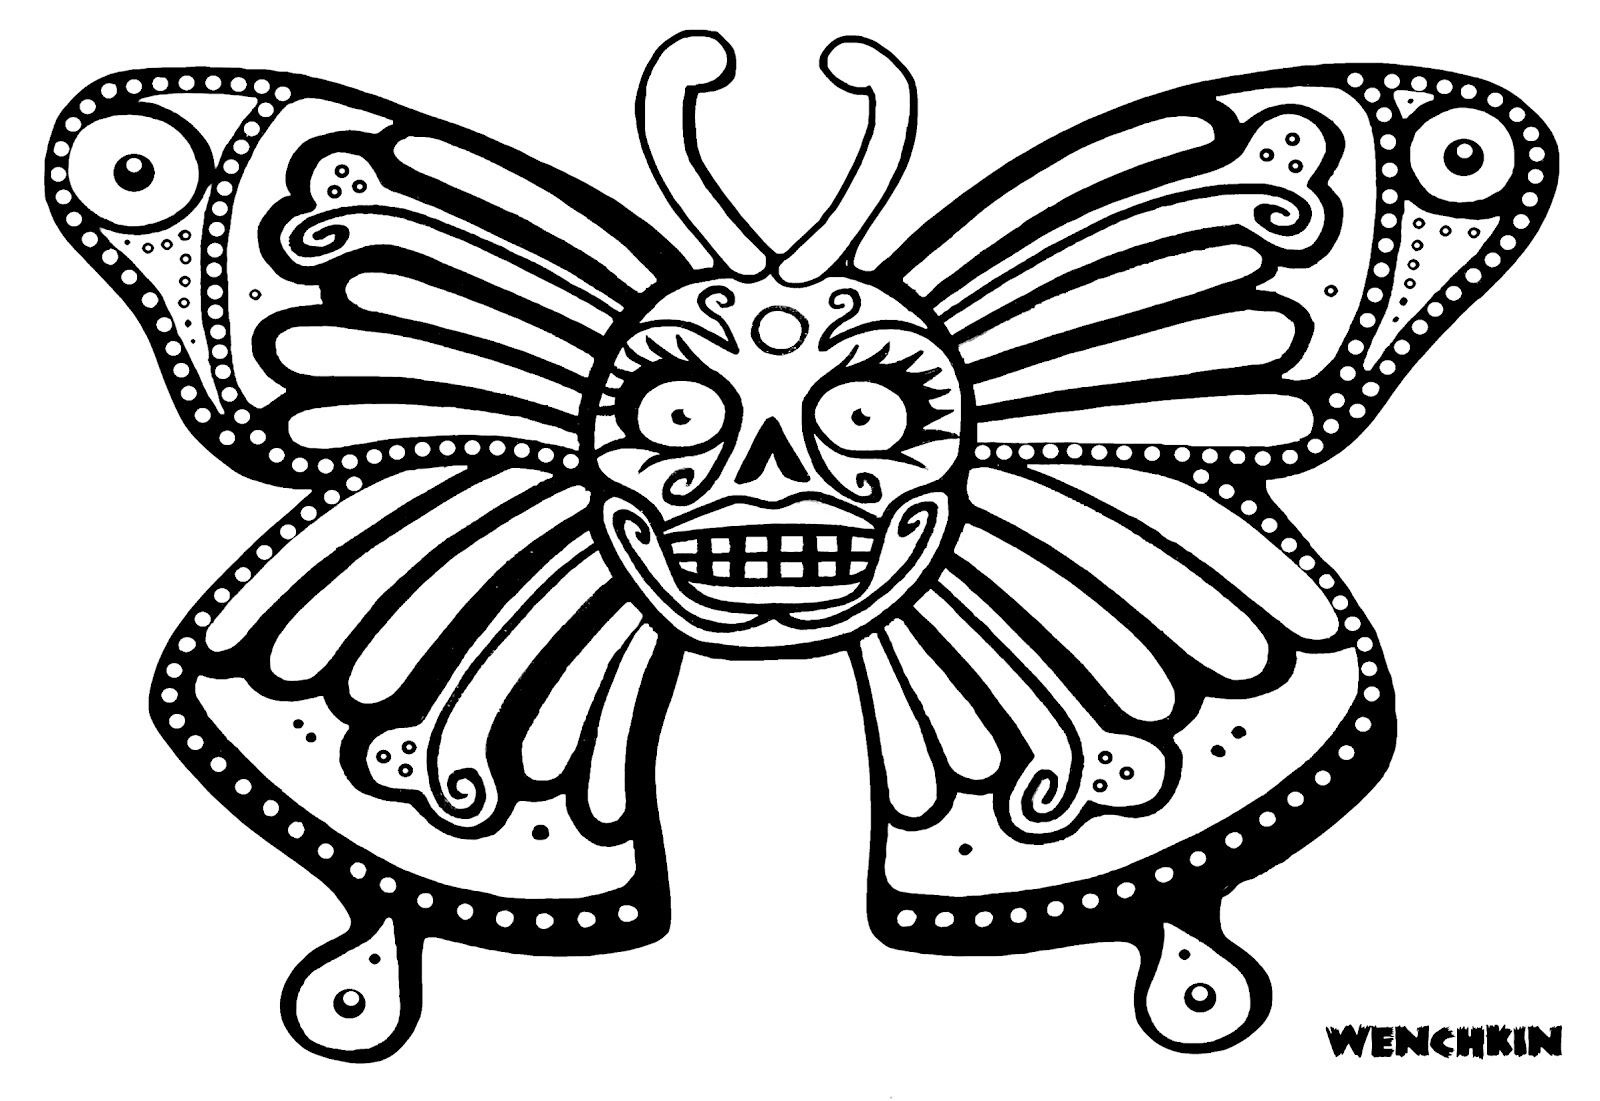 dog sugar skull coloring pages | Yucca Flats, N.M.: Wenchkin's coloring pages - Skullerfly